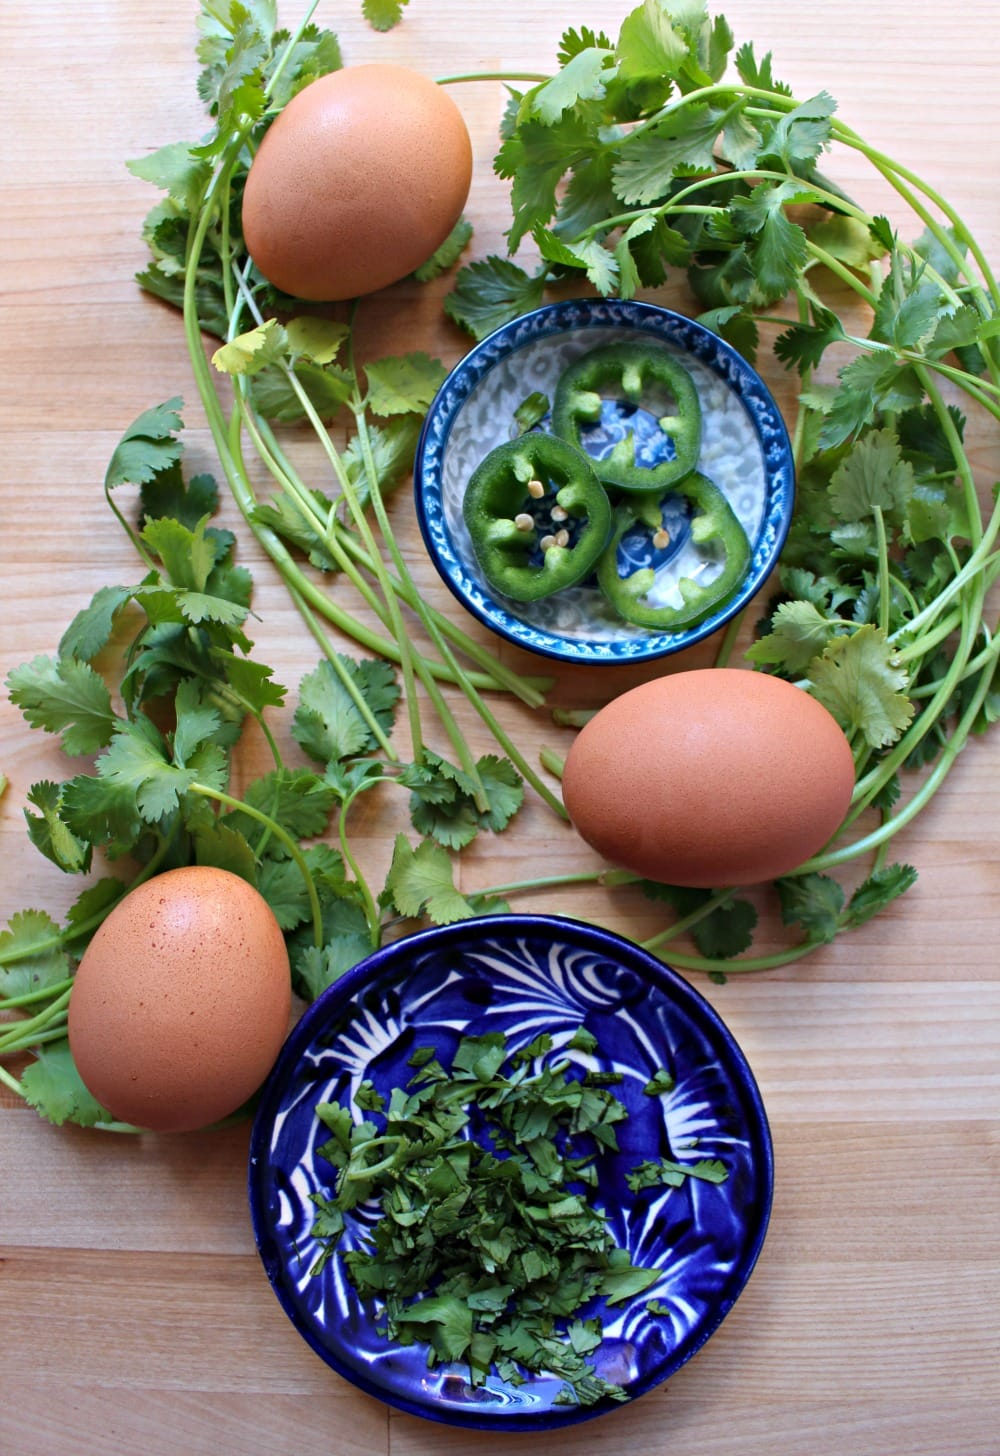 Cilantro leaves decorating a table with eggs and other toppings for the dish.